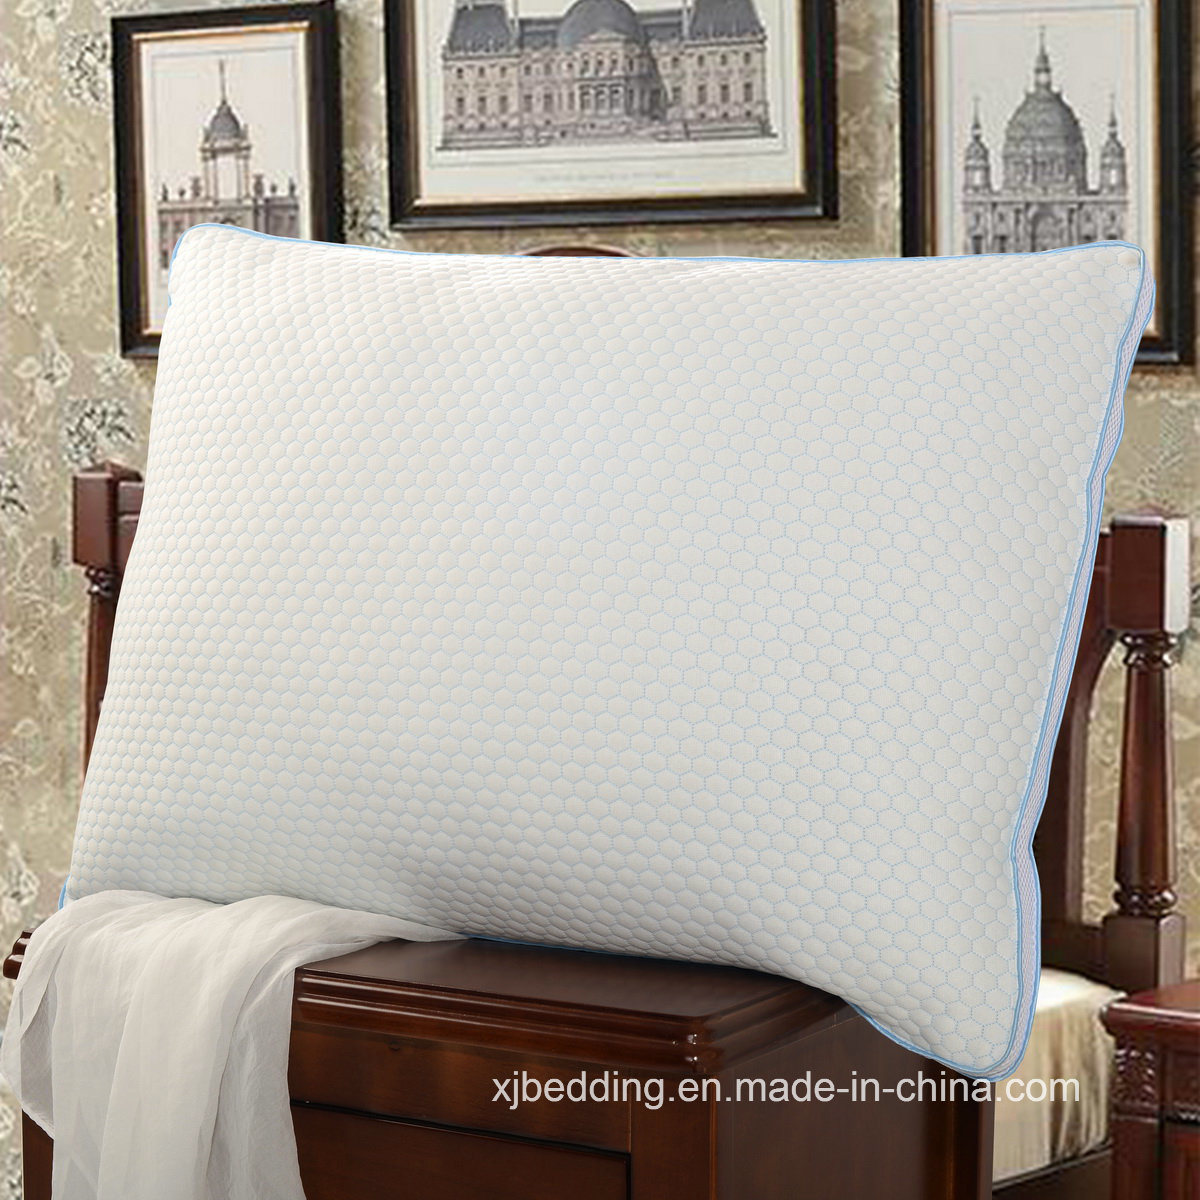 New Item Cool Feeling Polyester Pillow for Bed